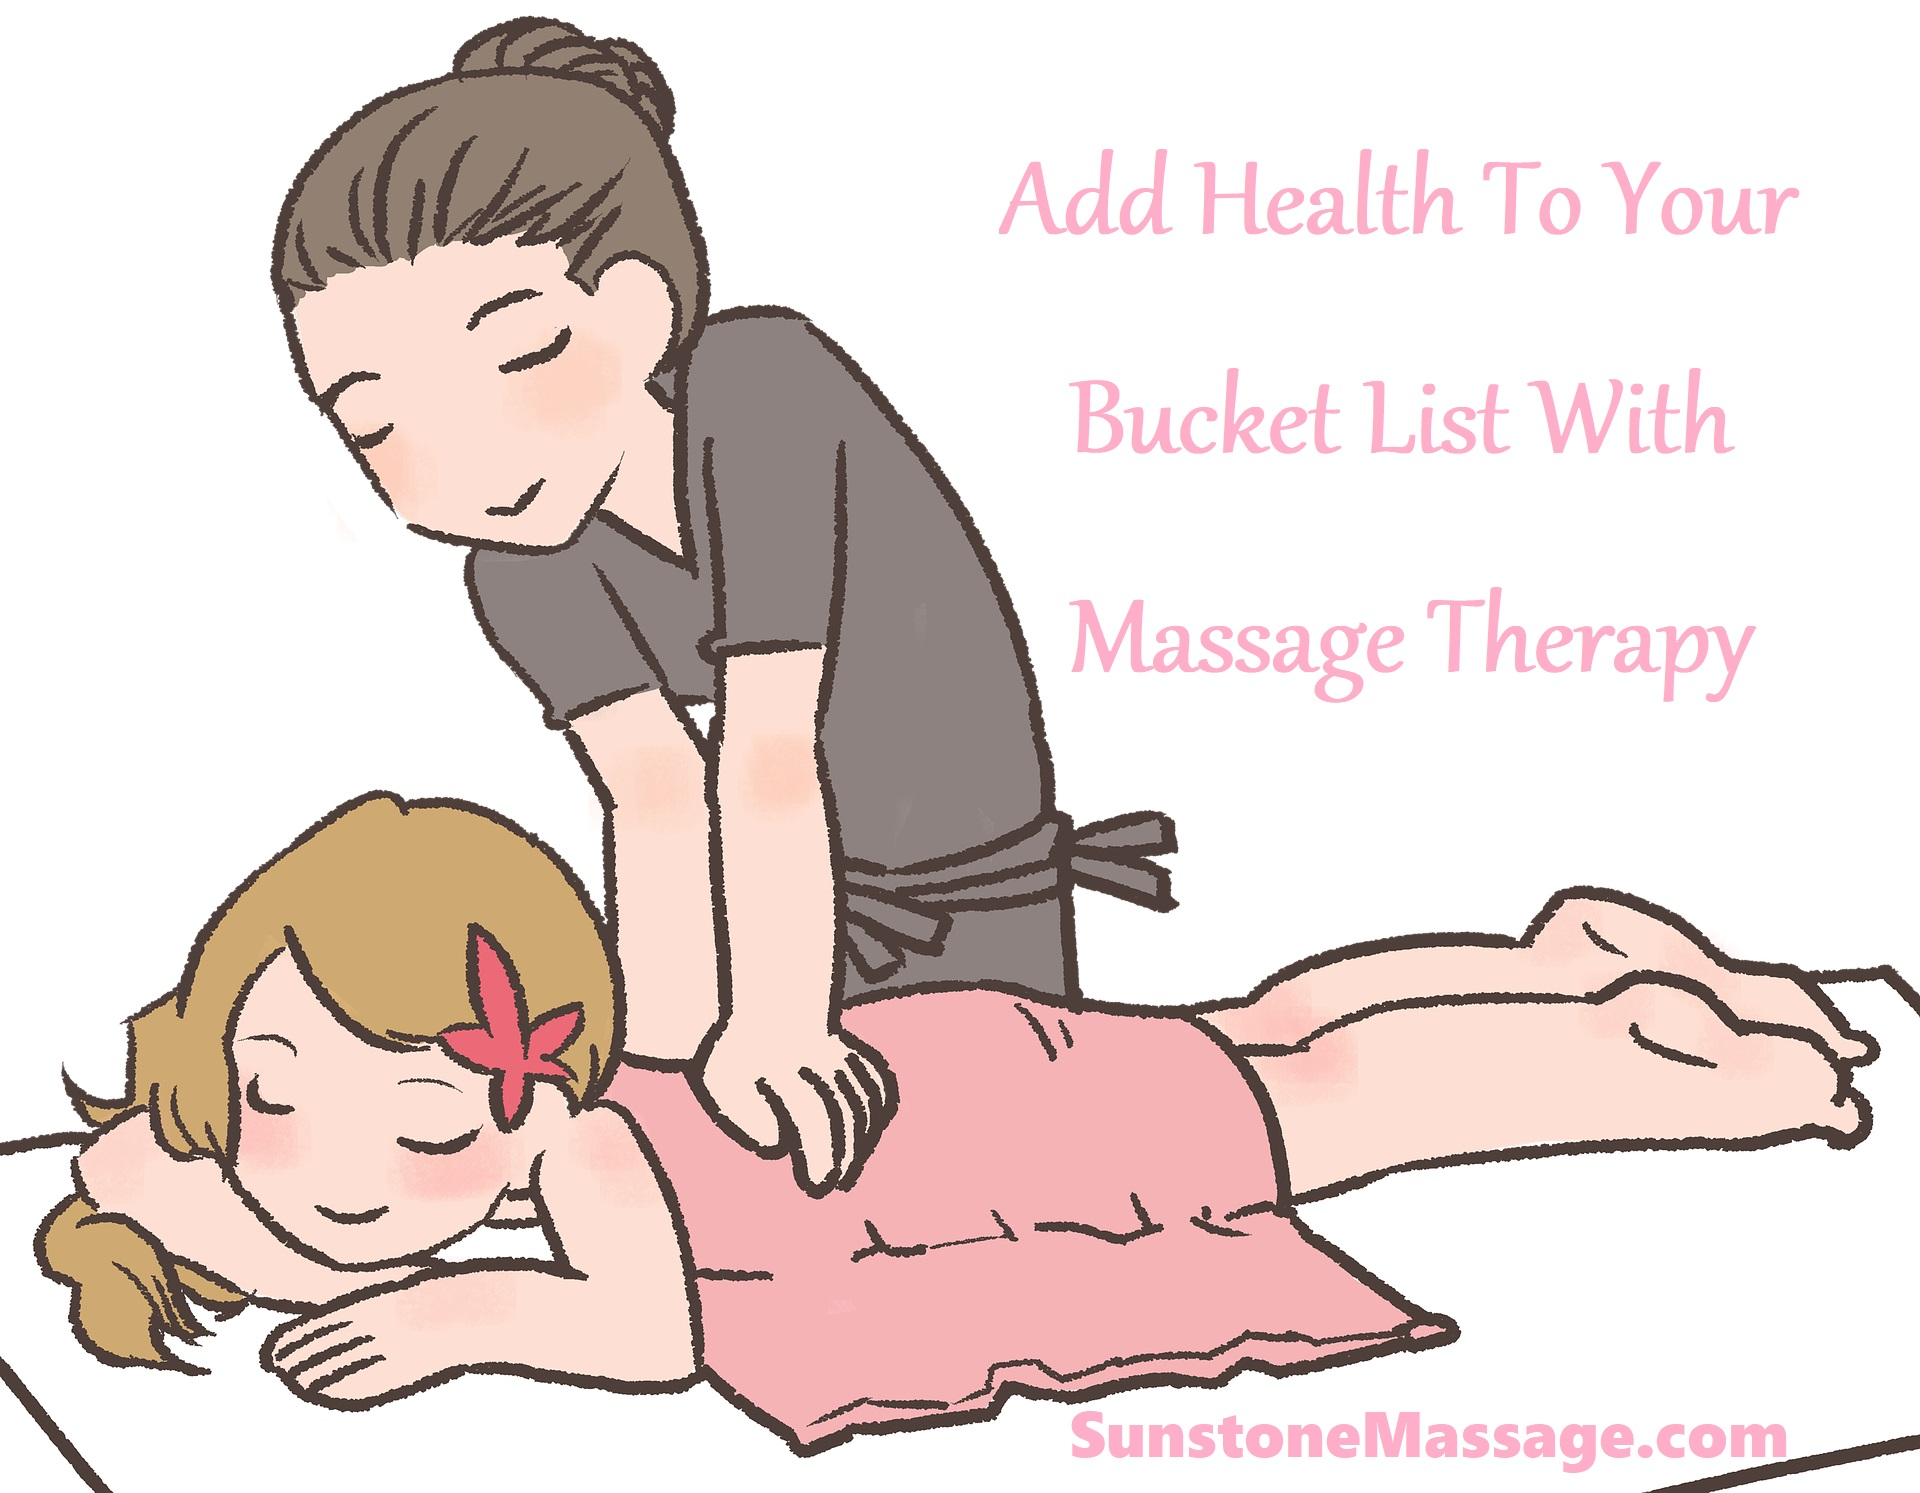 Add Health To Your Bucket List With Massage Therapy